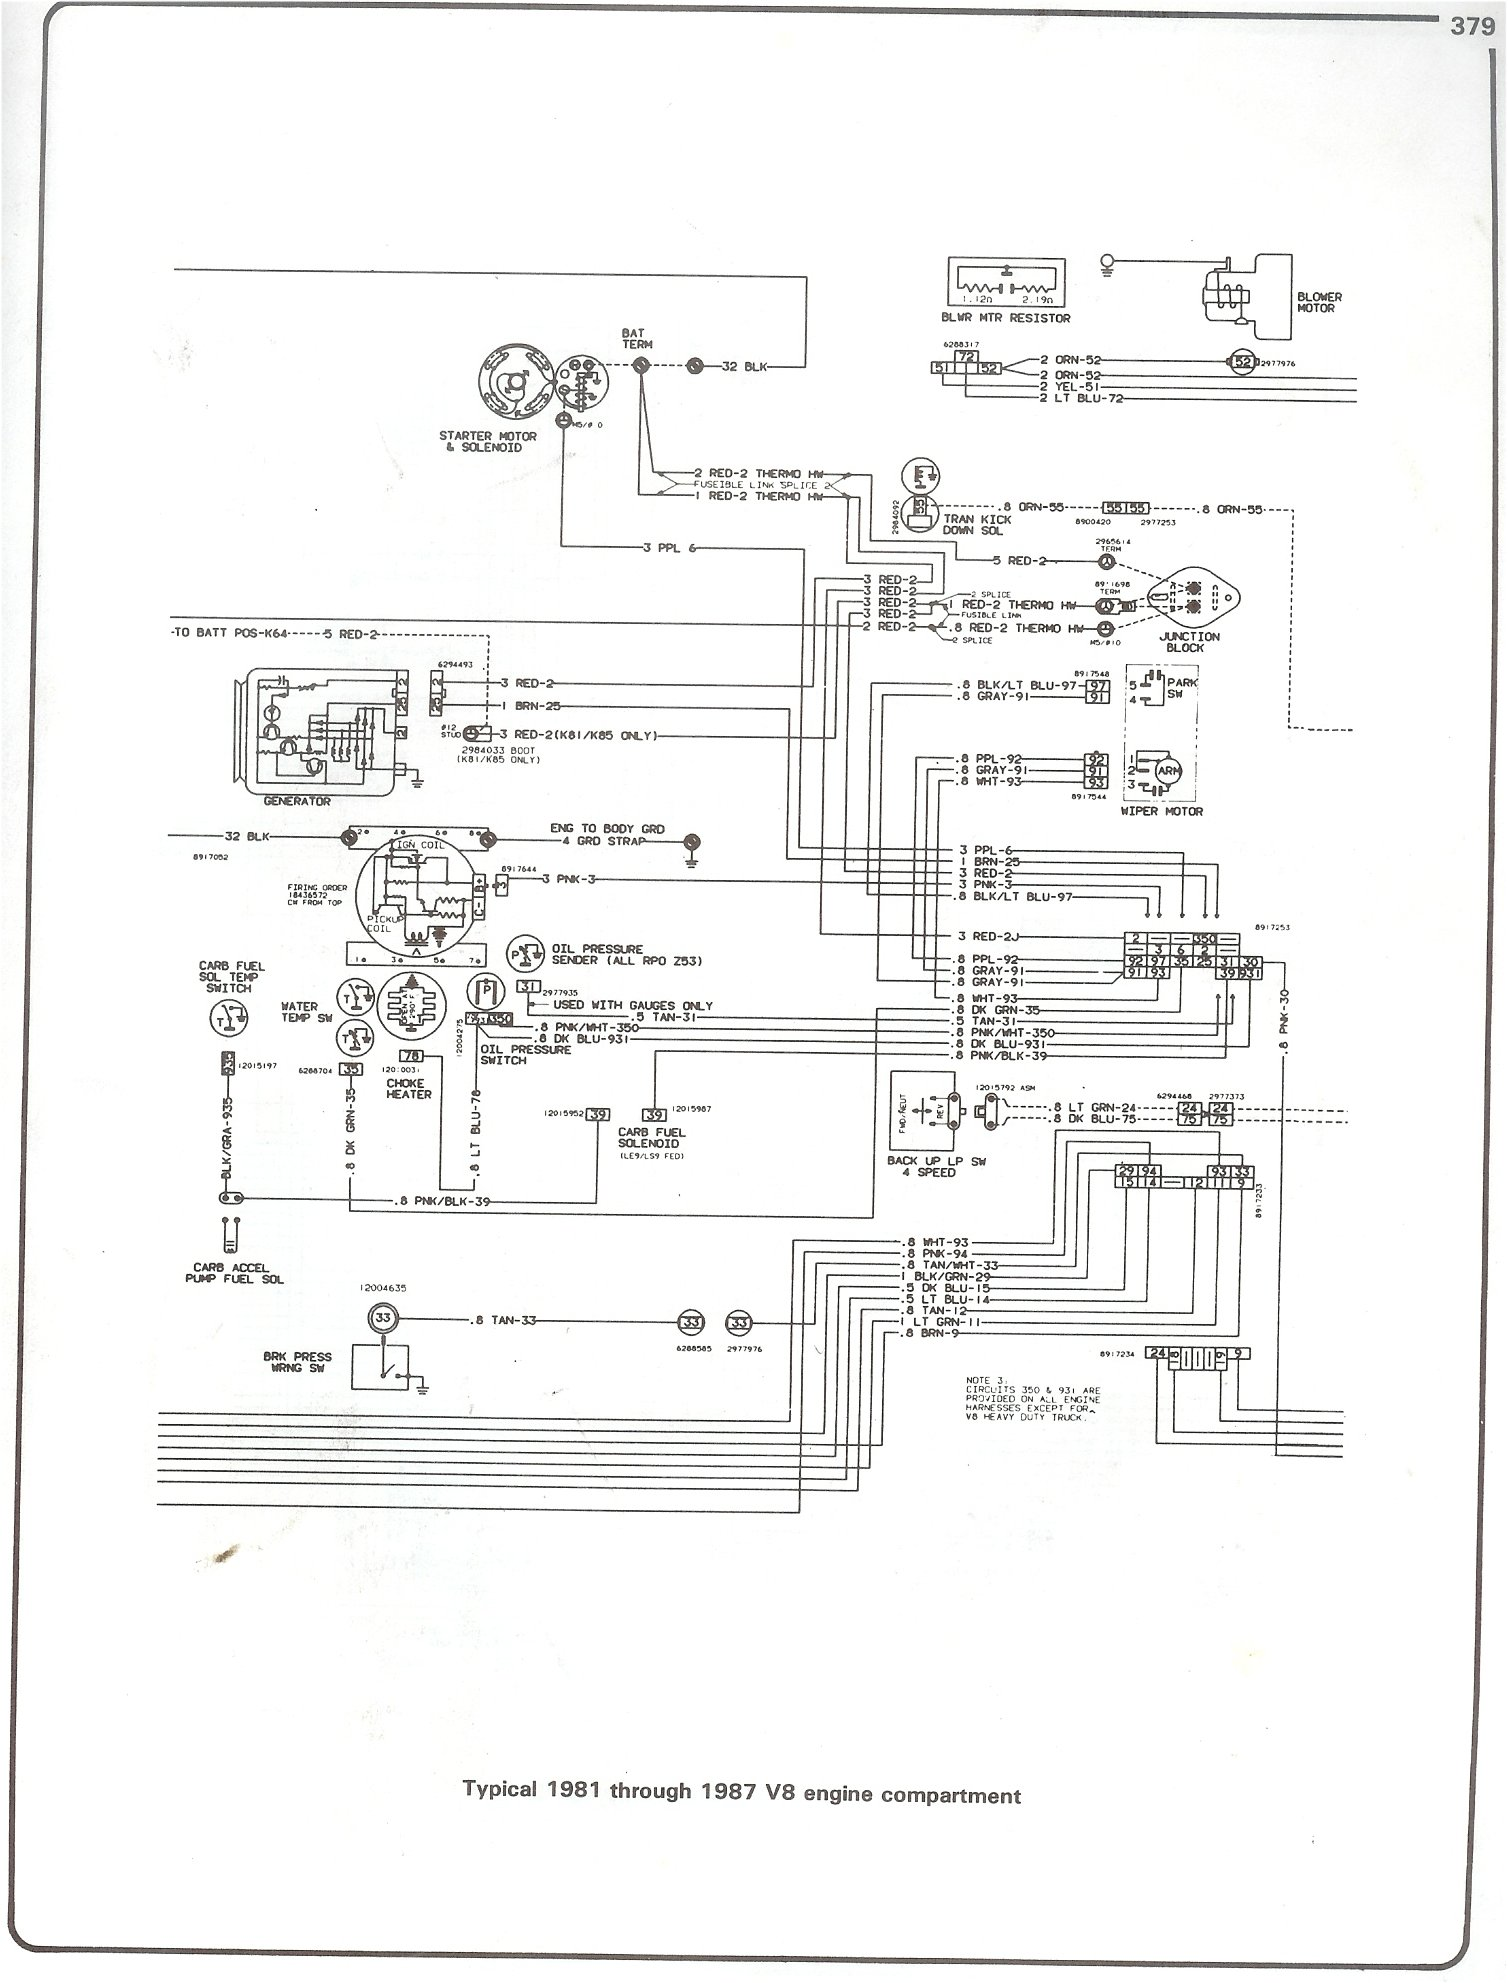 1966 Chevrolet C10 Pick Up Wiring Diagram | Best Wiring Liry